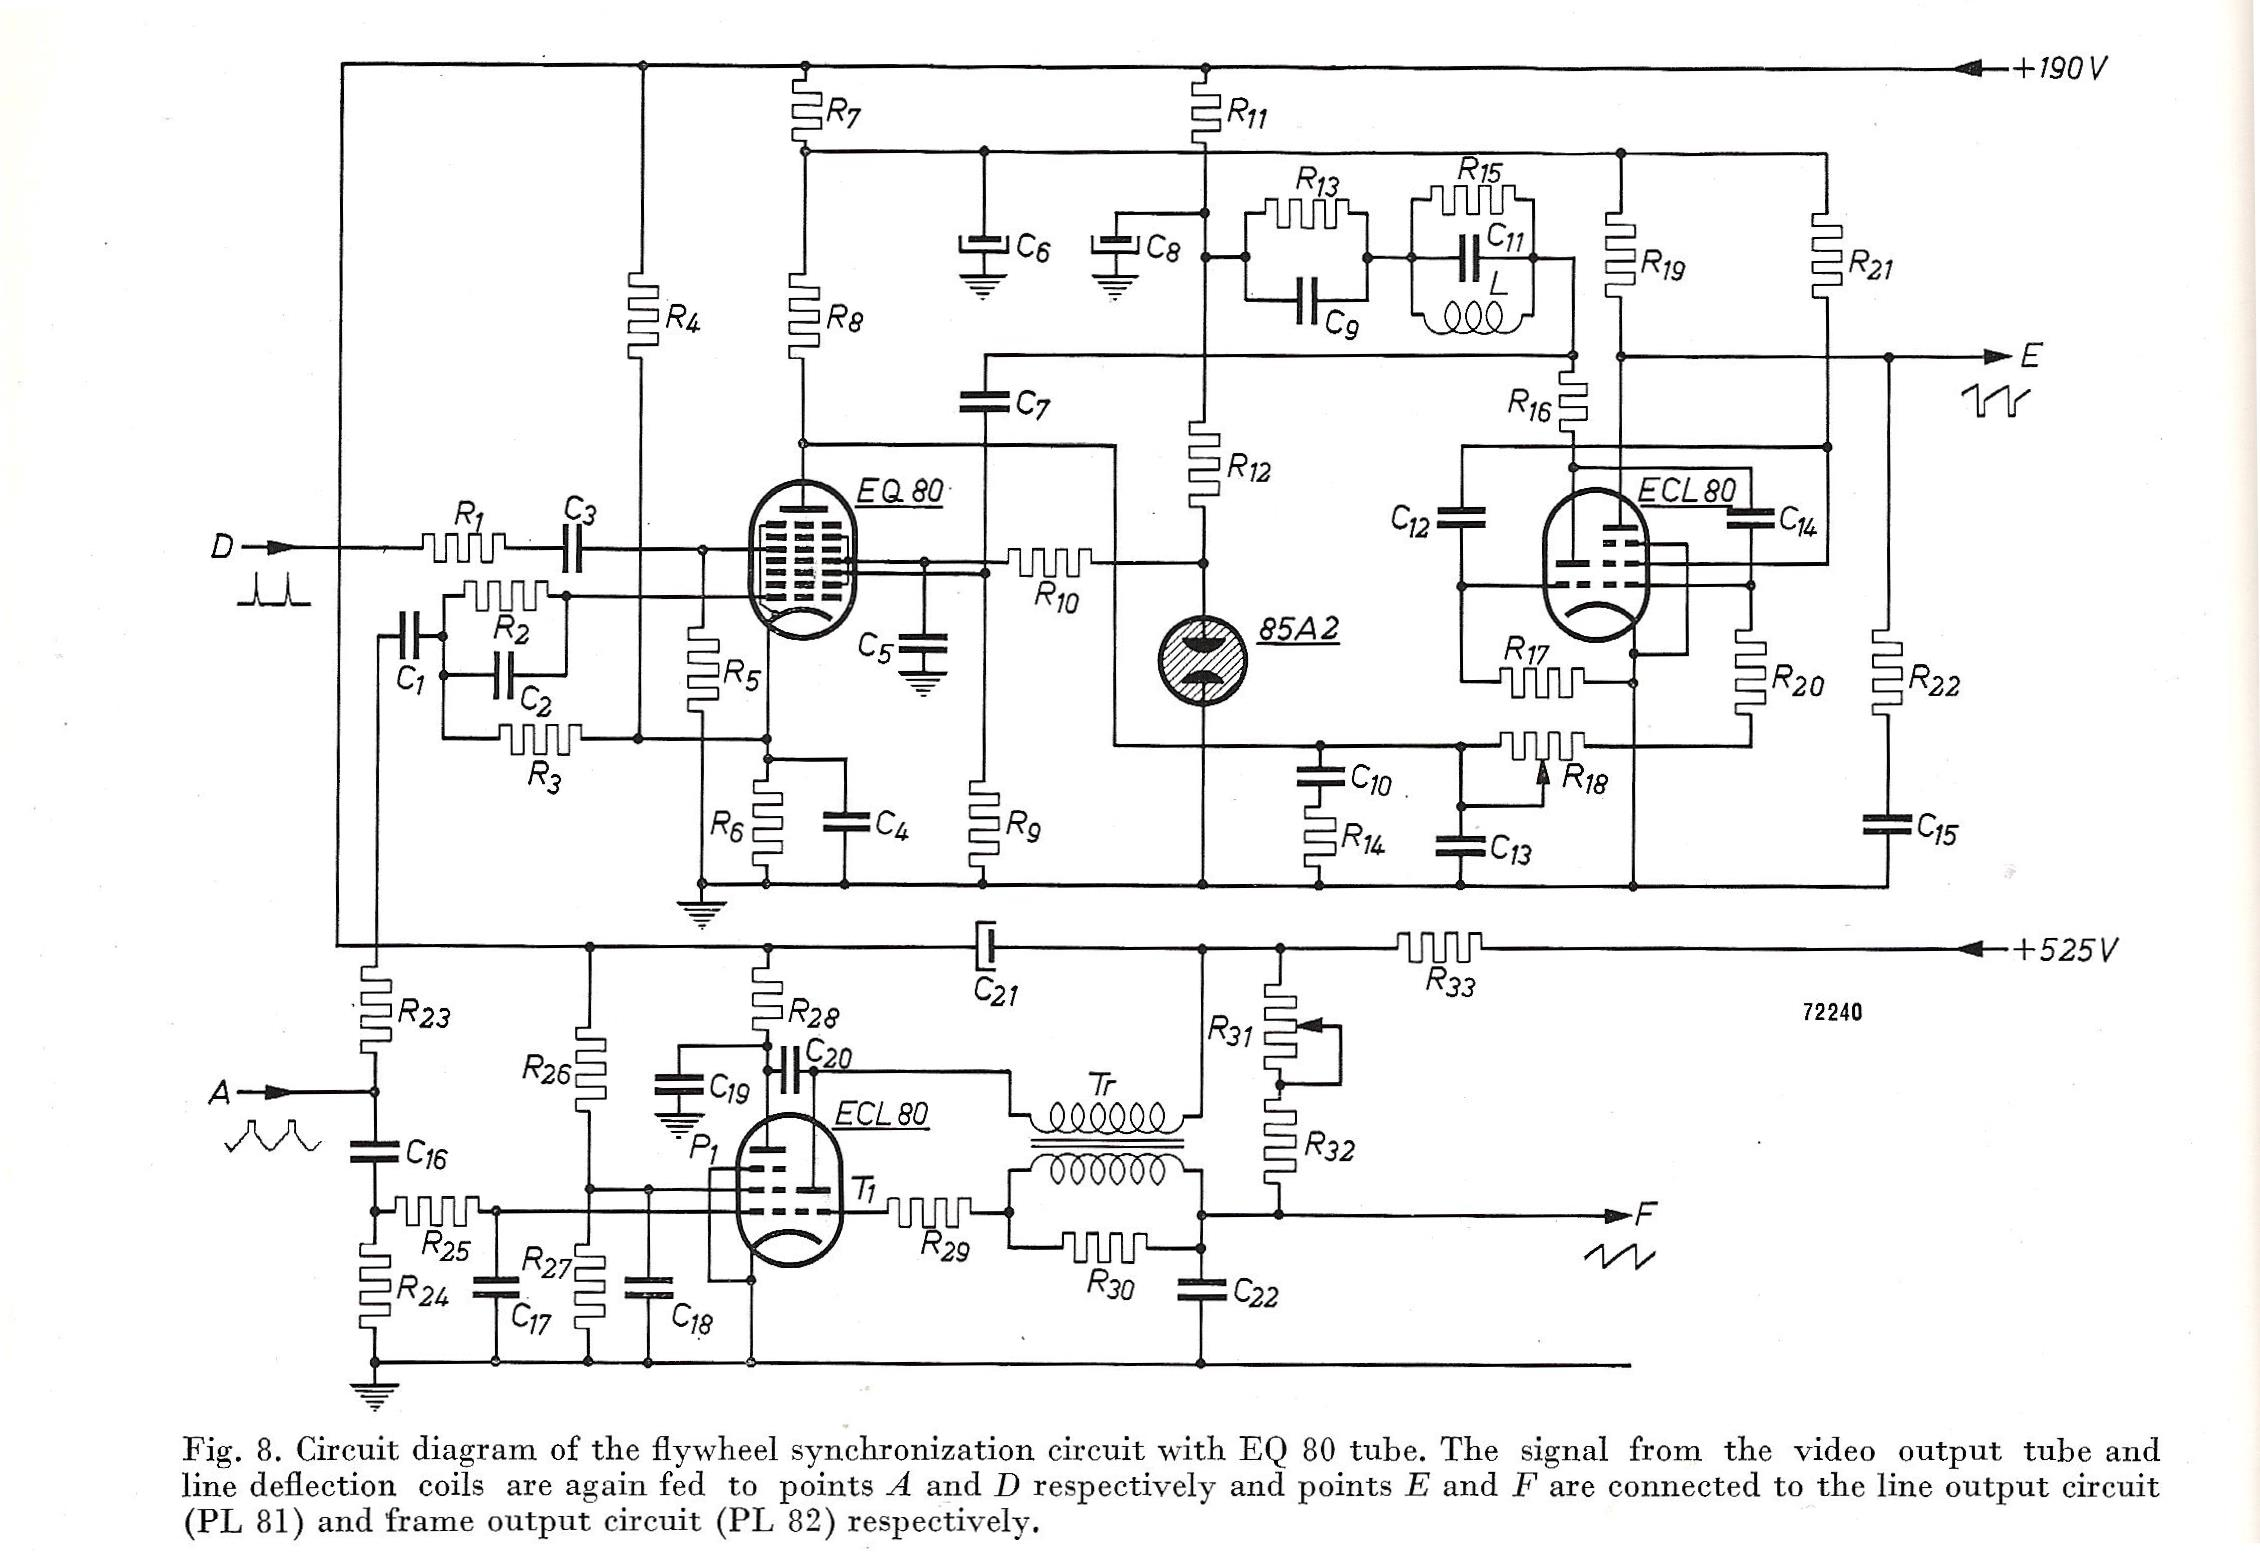 EAB_1952_EQ80_Flywheel_synchronization_3 horstmann centaurplus c17 wiring diagram schematic circuit diagram horstmann centaurplus c17 wiring diagram at readyjetset.co